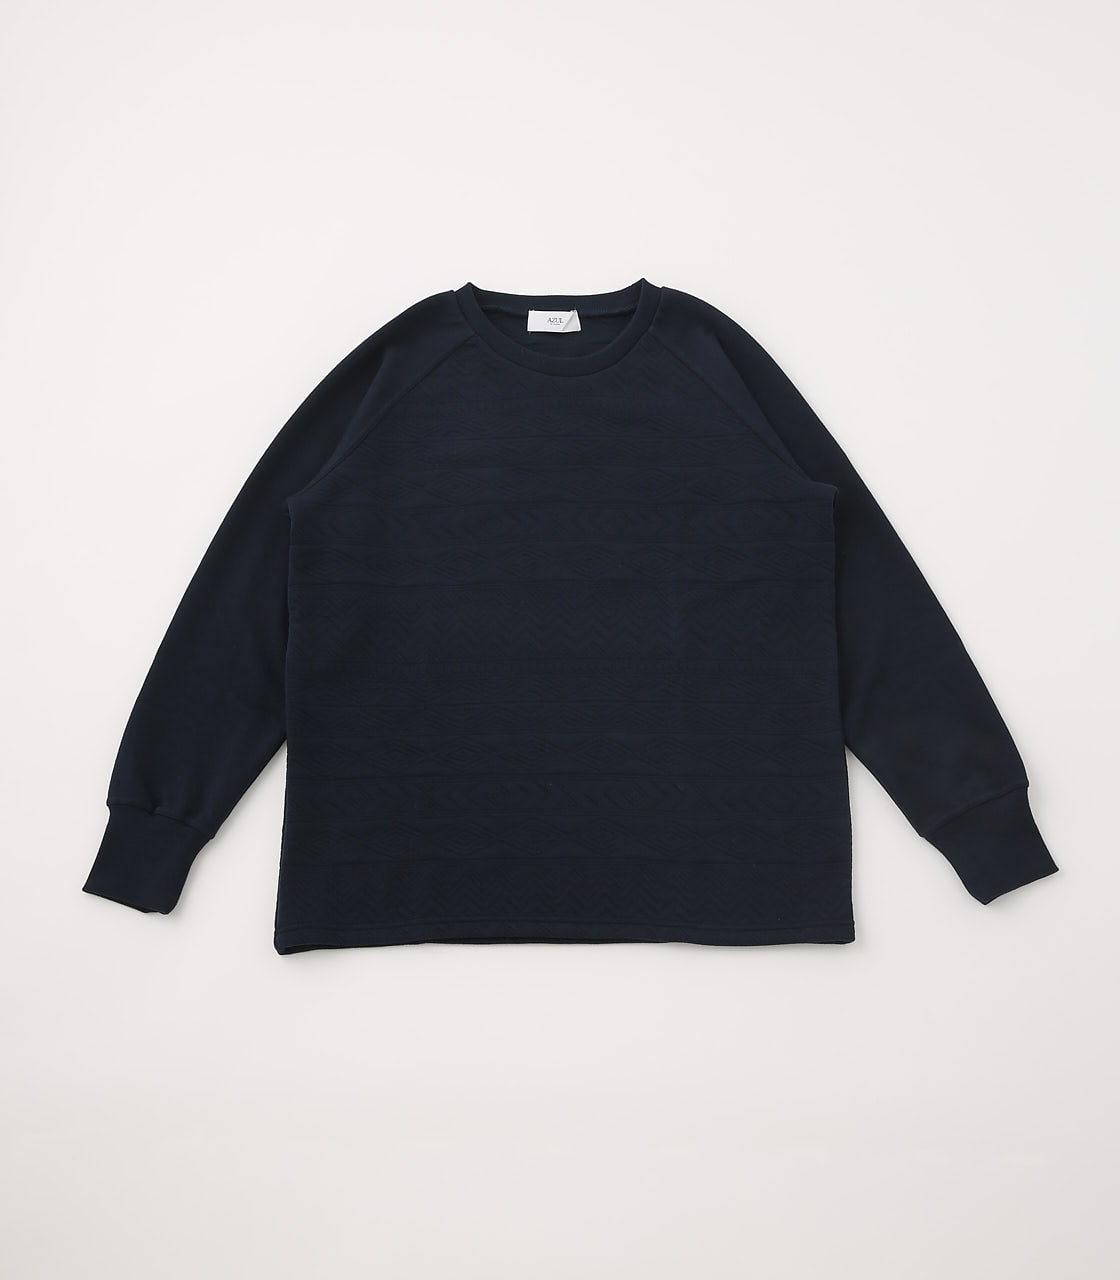 【AZUL BY MOUSSY】MATELASSE RAGLAN TOPS 詳細画像 BLK 1